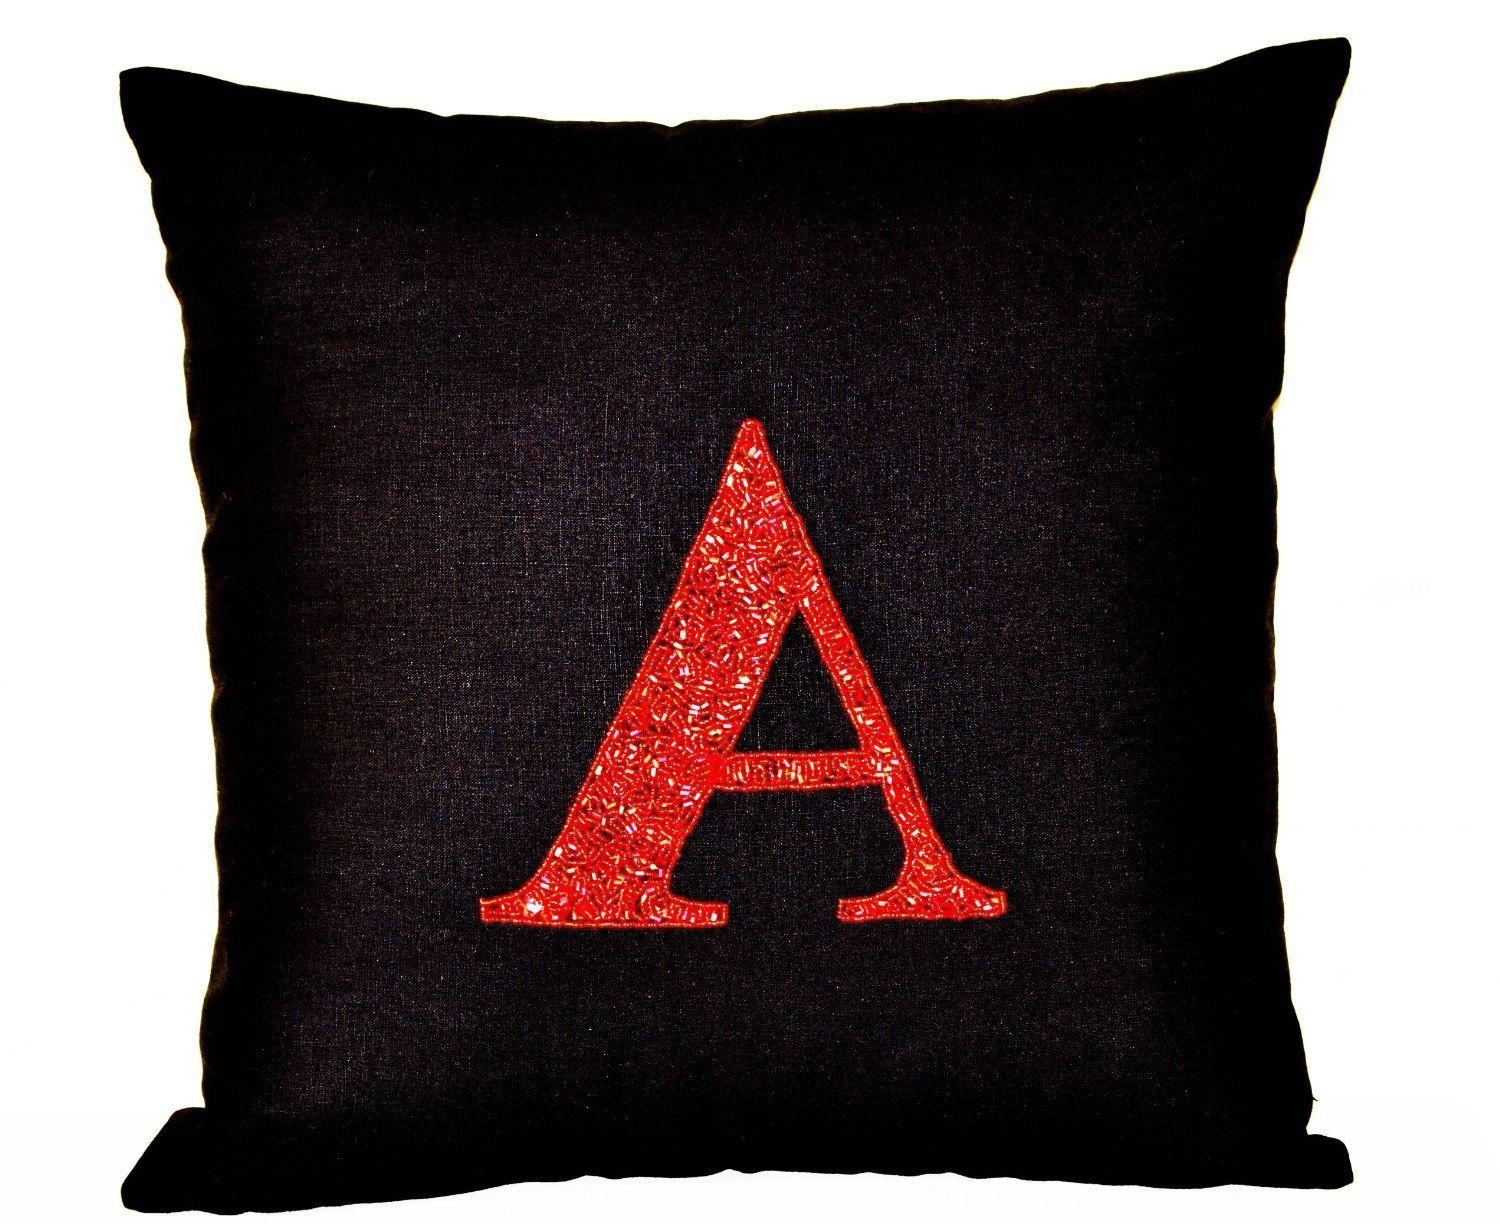 Initial Pillow Covers Entrancing Amore Beaute Handcrafted Initial Pillow Cover  Red Sequin Monogram Review